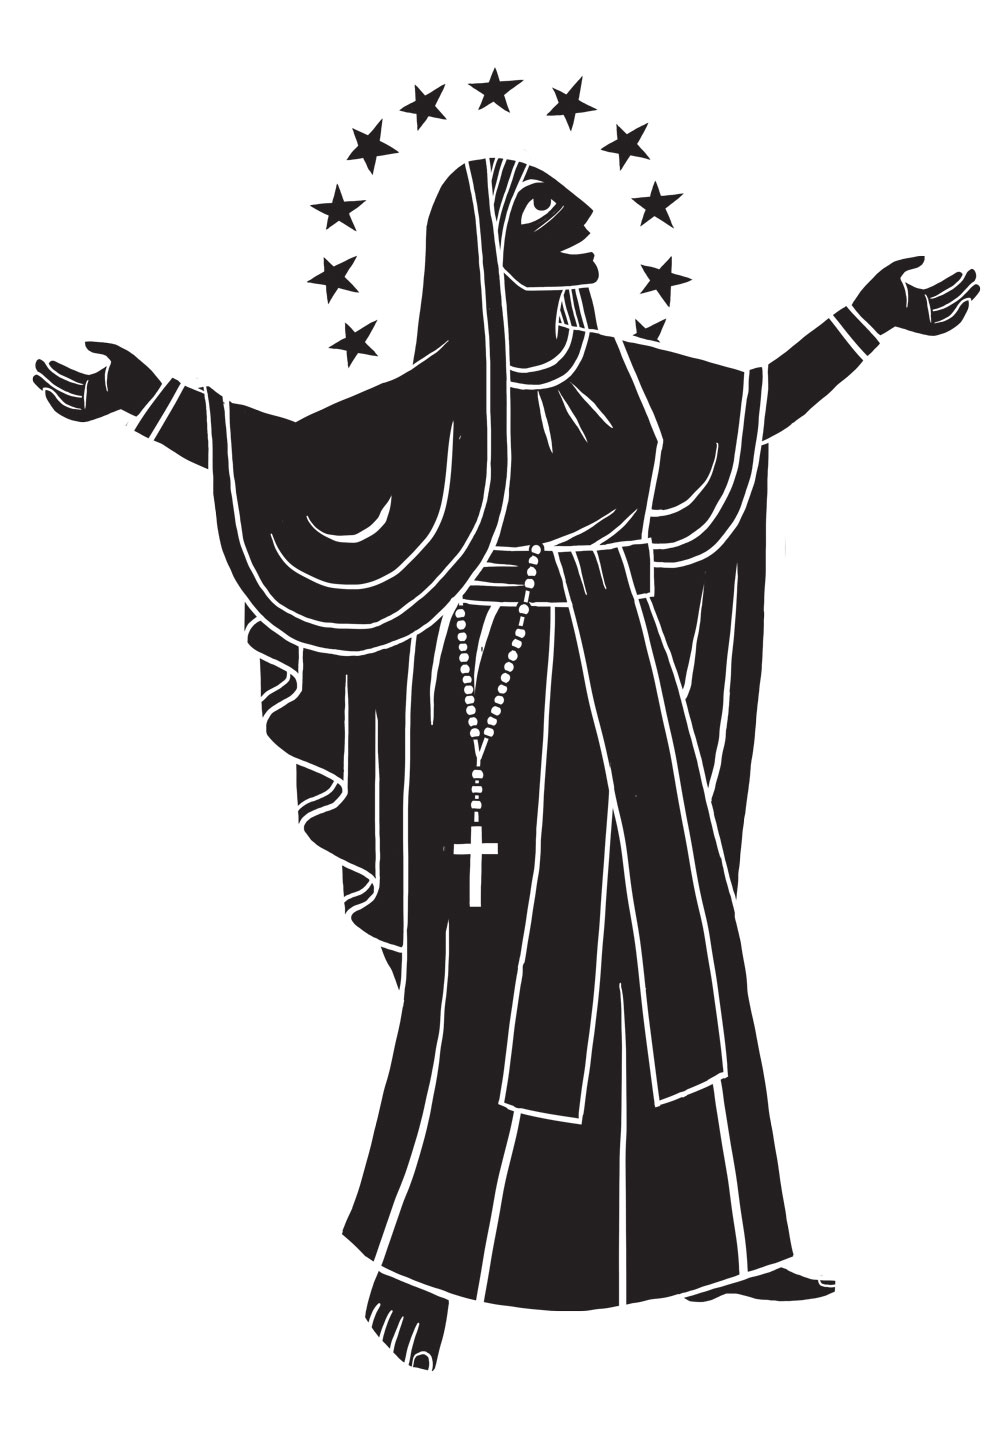 An illustration of Mary Mother of God